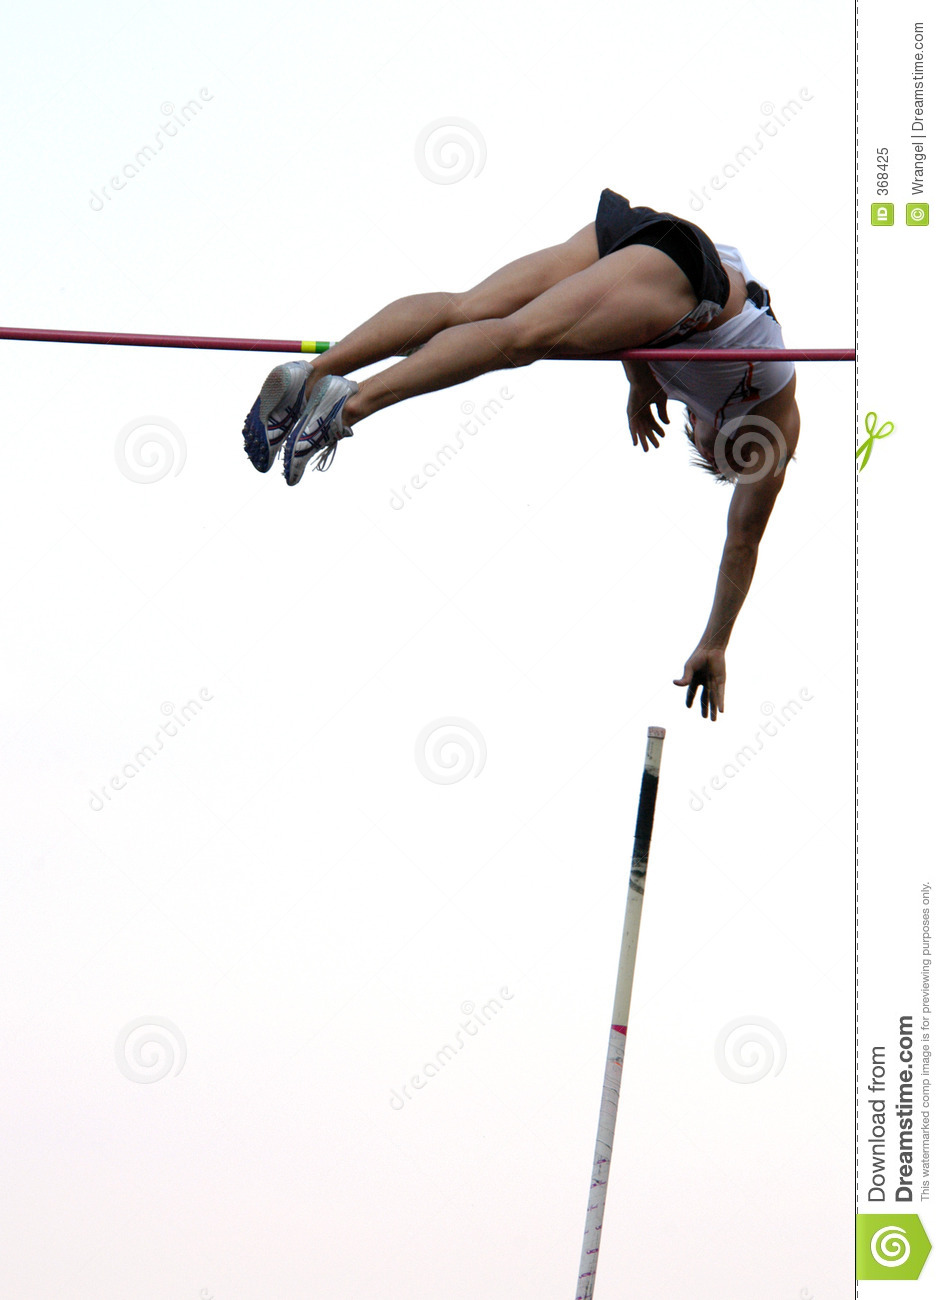 Athlete Clearing the Bar